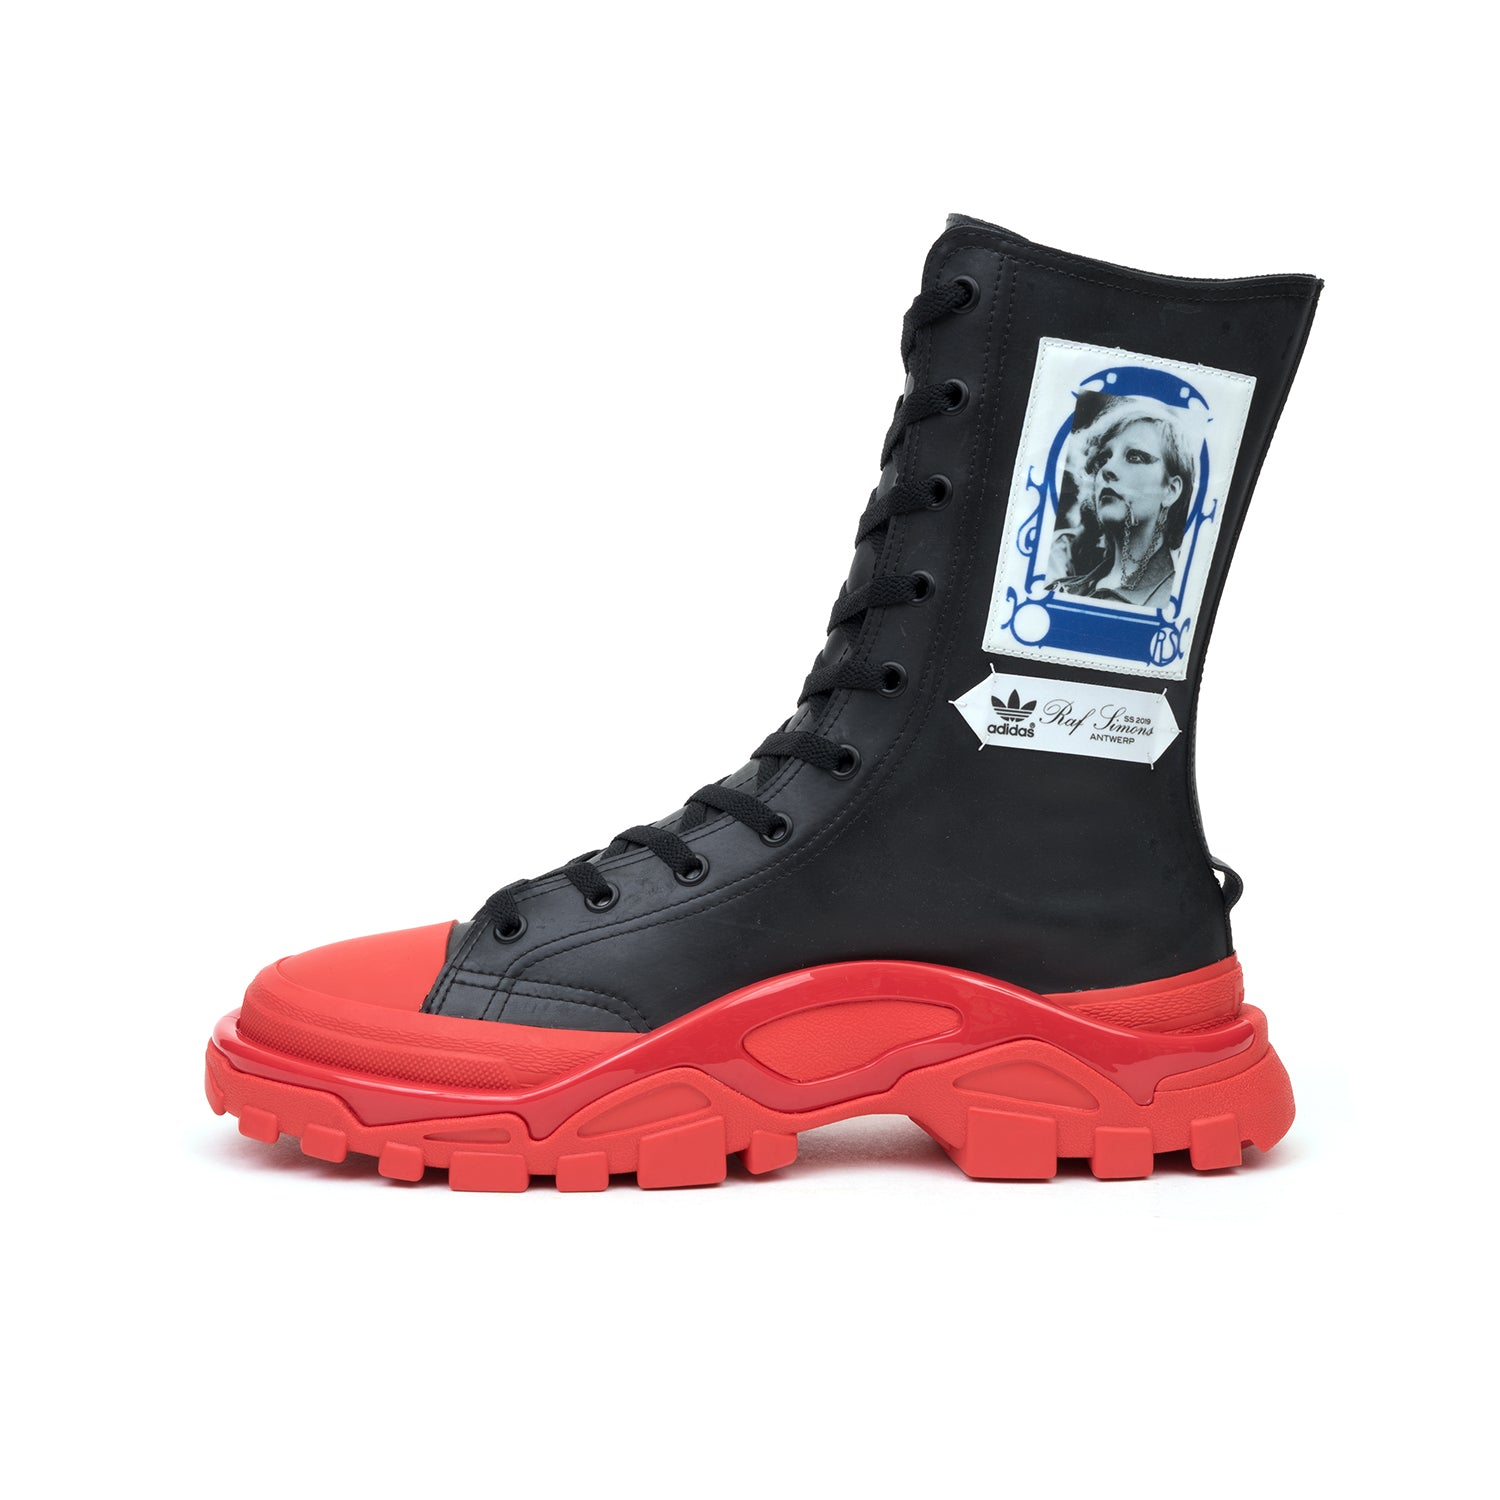 70d8d4c5ef46 adidas x Raf Simons Detroit High Black Red – Concrete